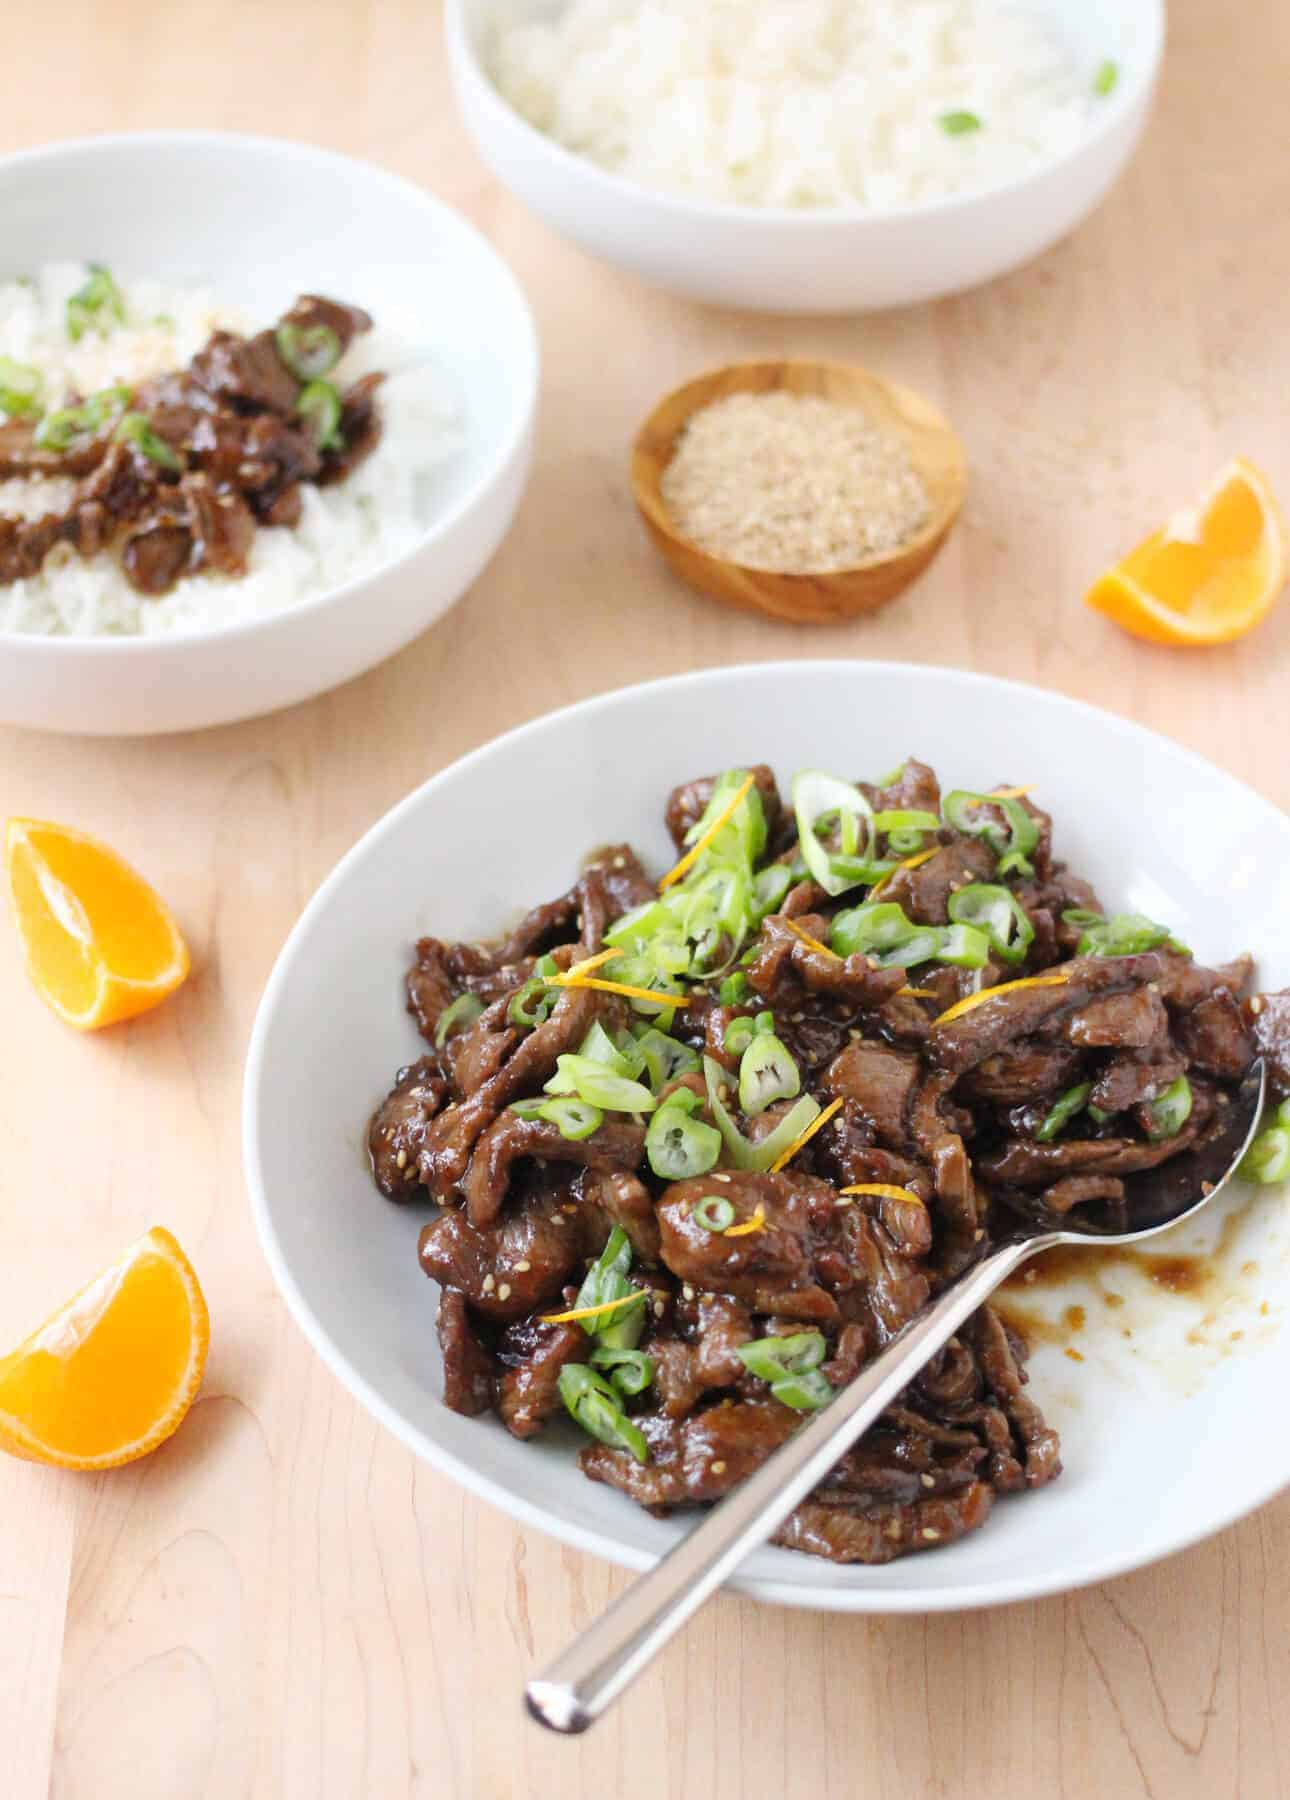 Superfast Sesame Orange Beef Stir-Fry